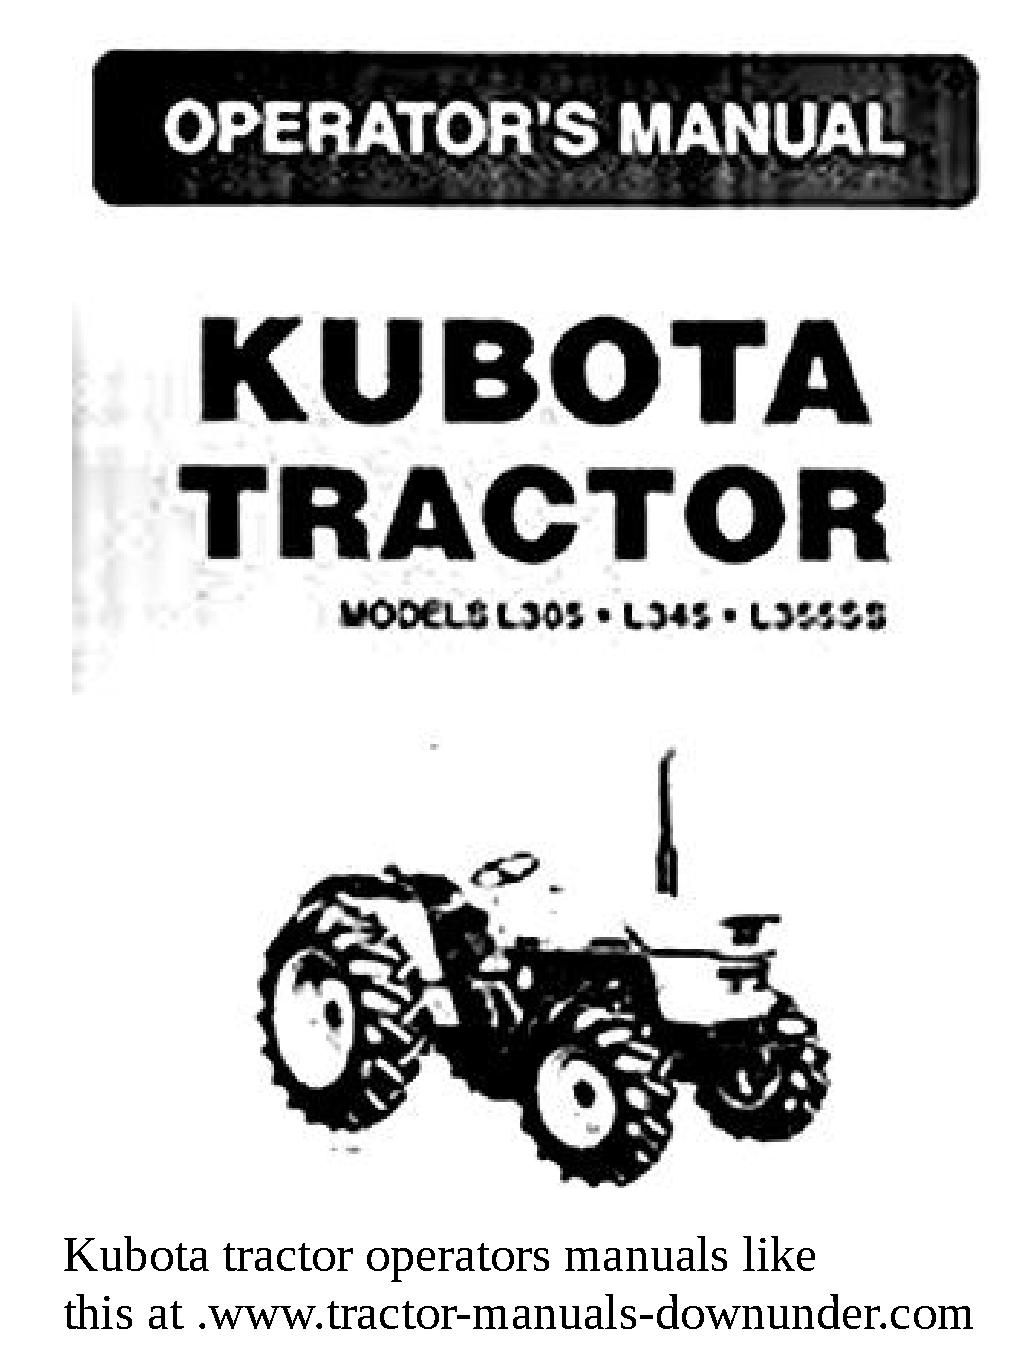 Pin by Tractor manuals dowunder on Kubota tractor manuals to download |  Pinterest | Kubota tractors and Tractor